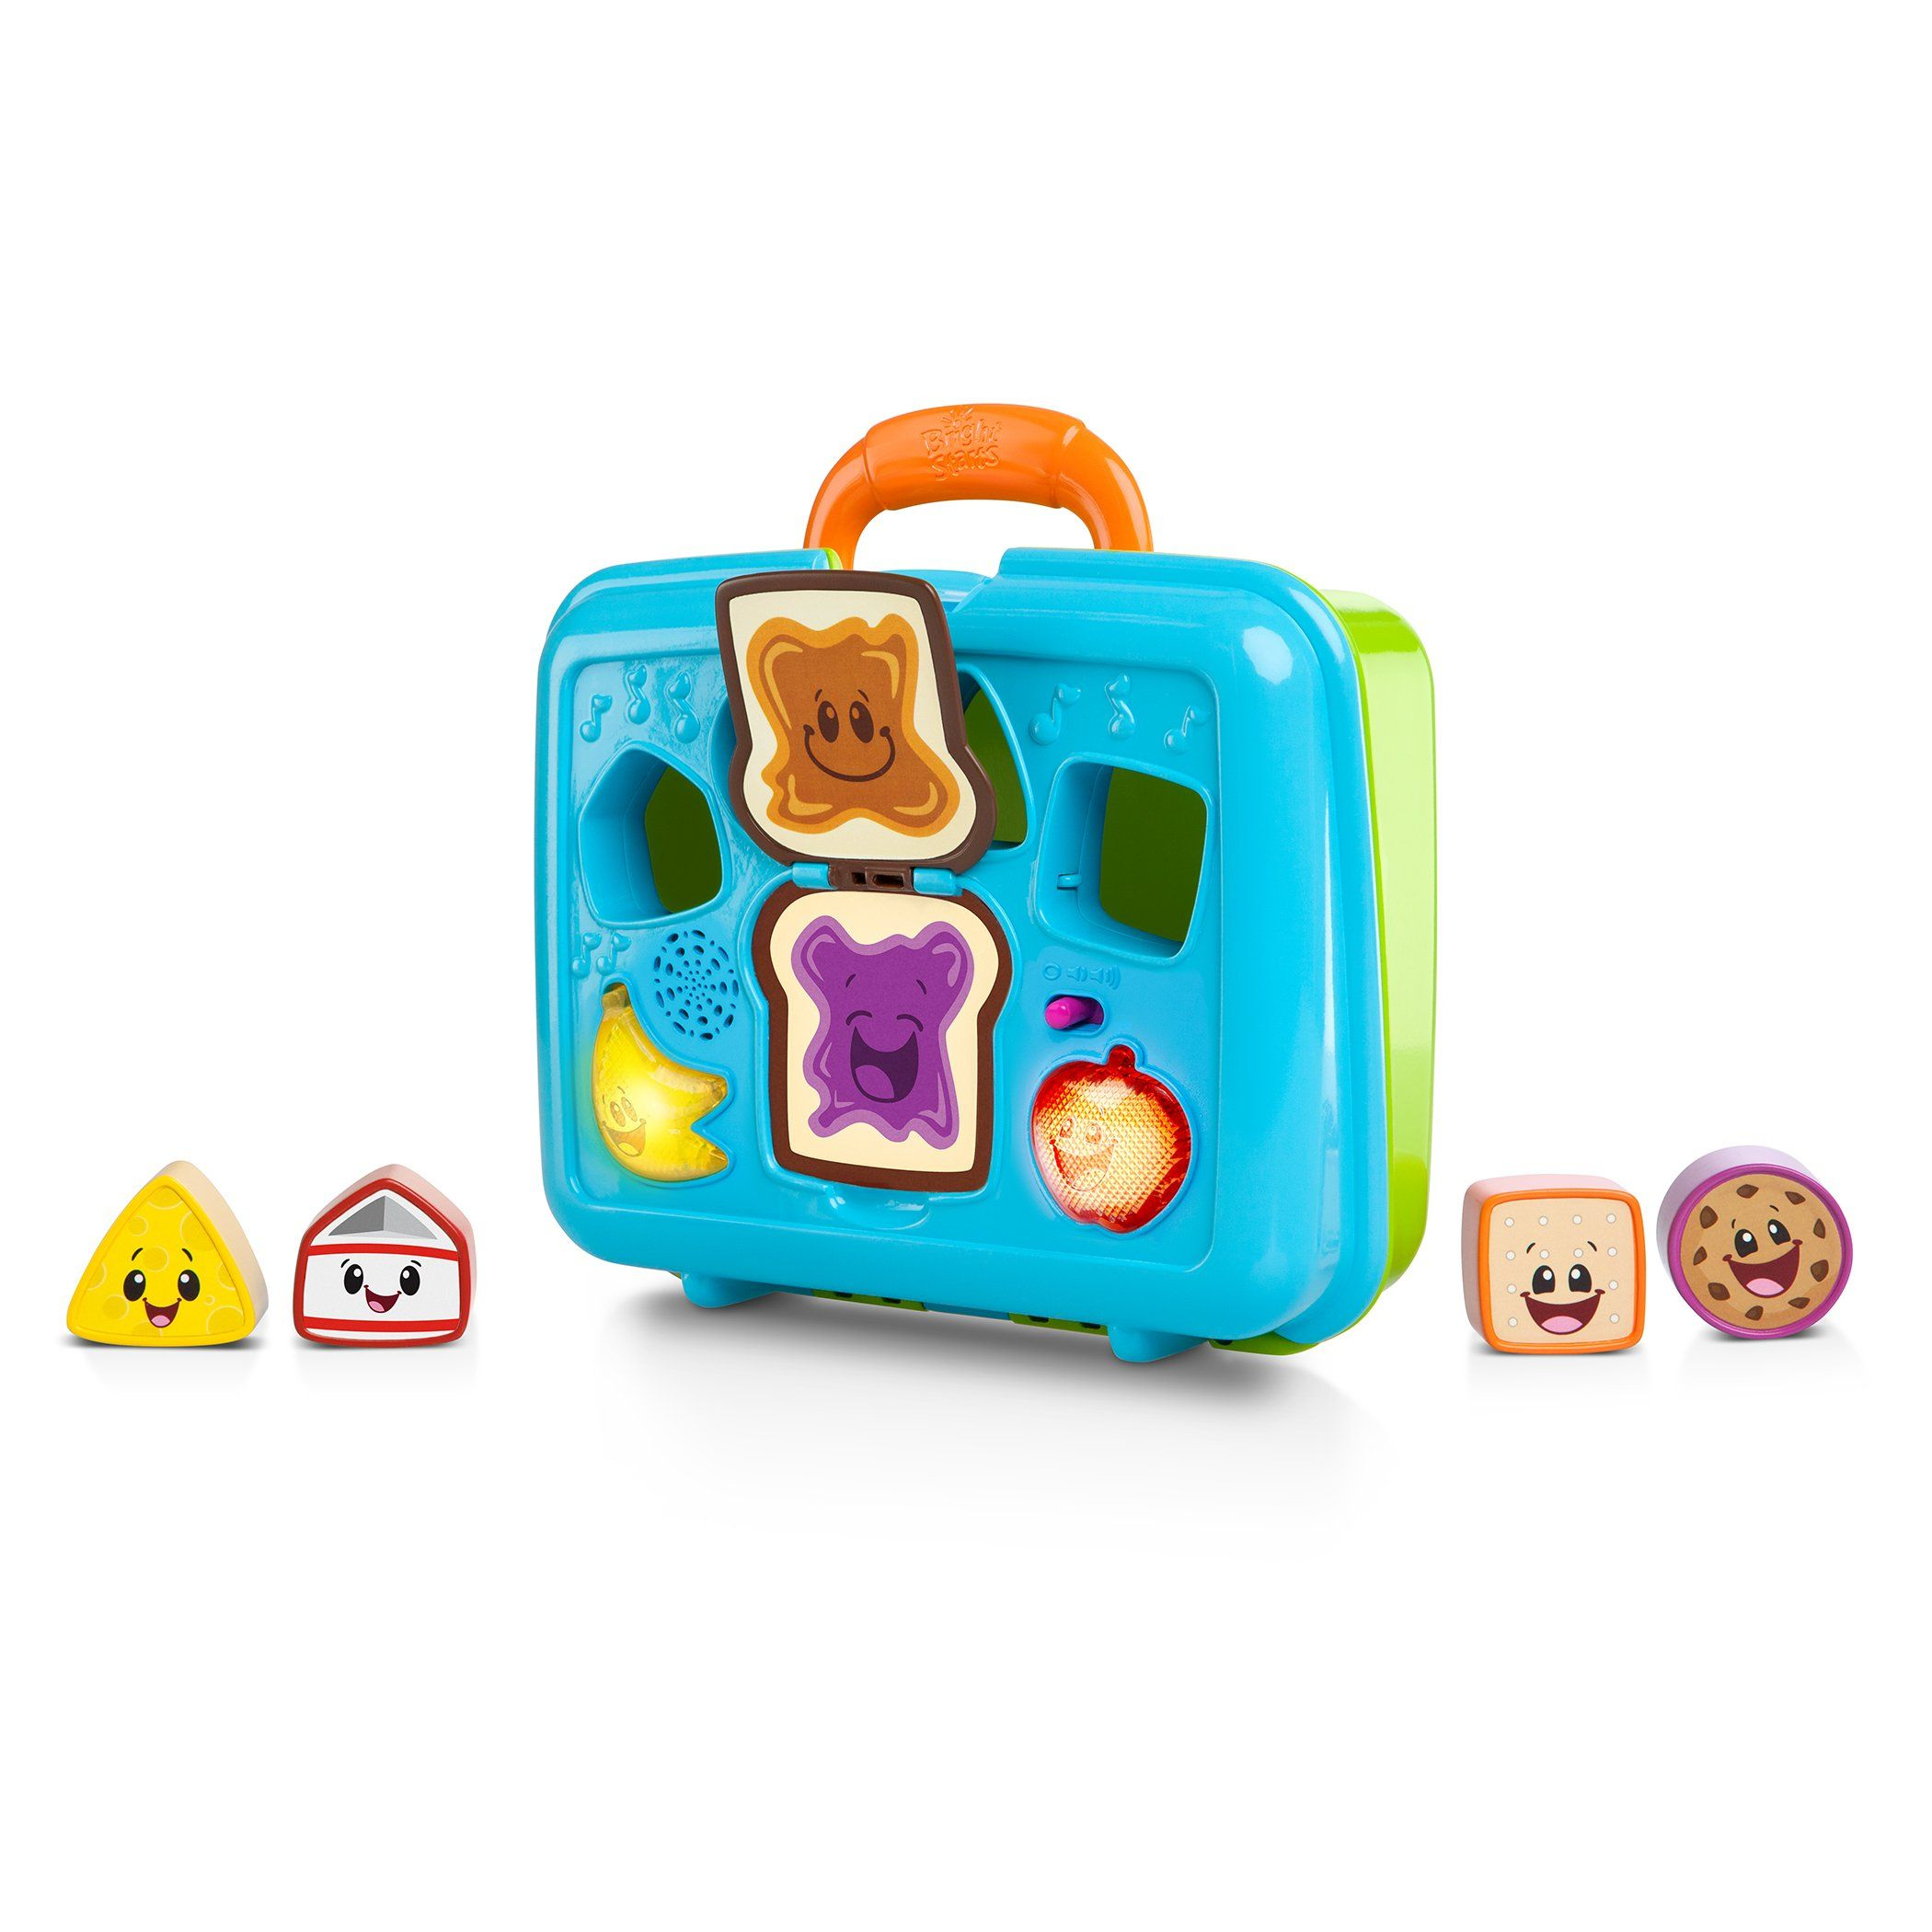 Toys images with names  Bright Starts Giggling Gourmet Sort un Giggle Lunchbox Food name is